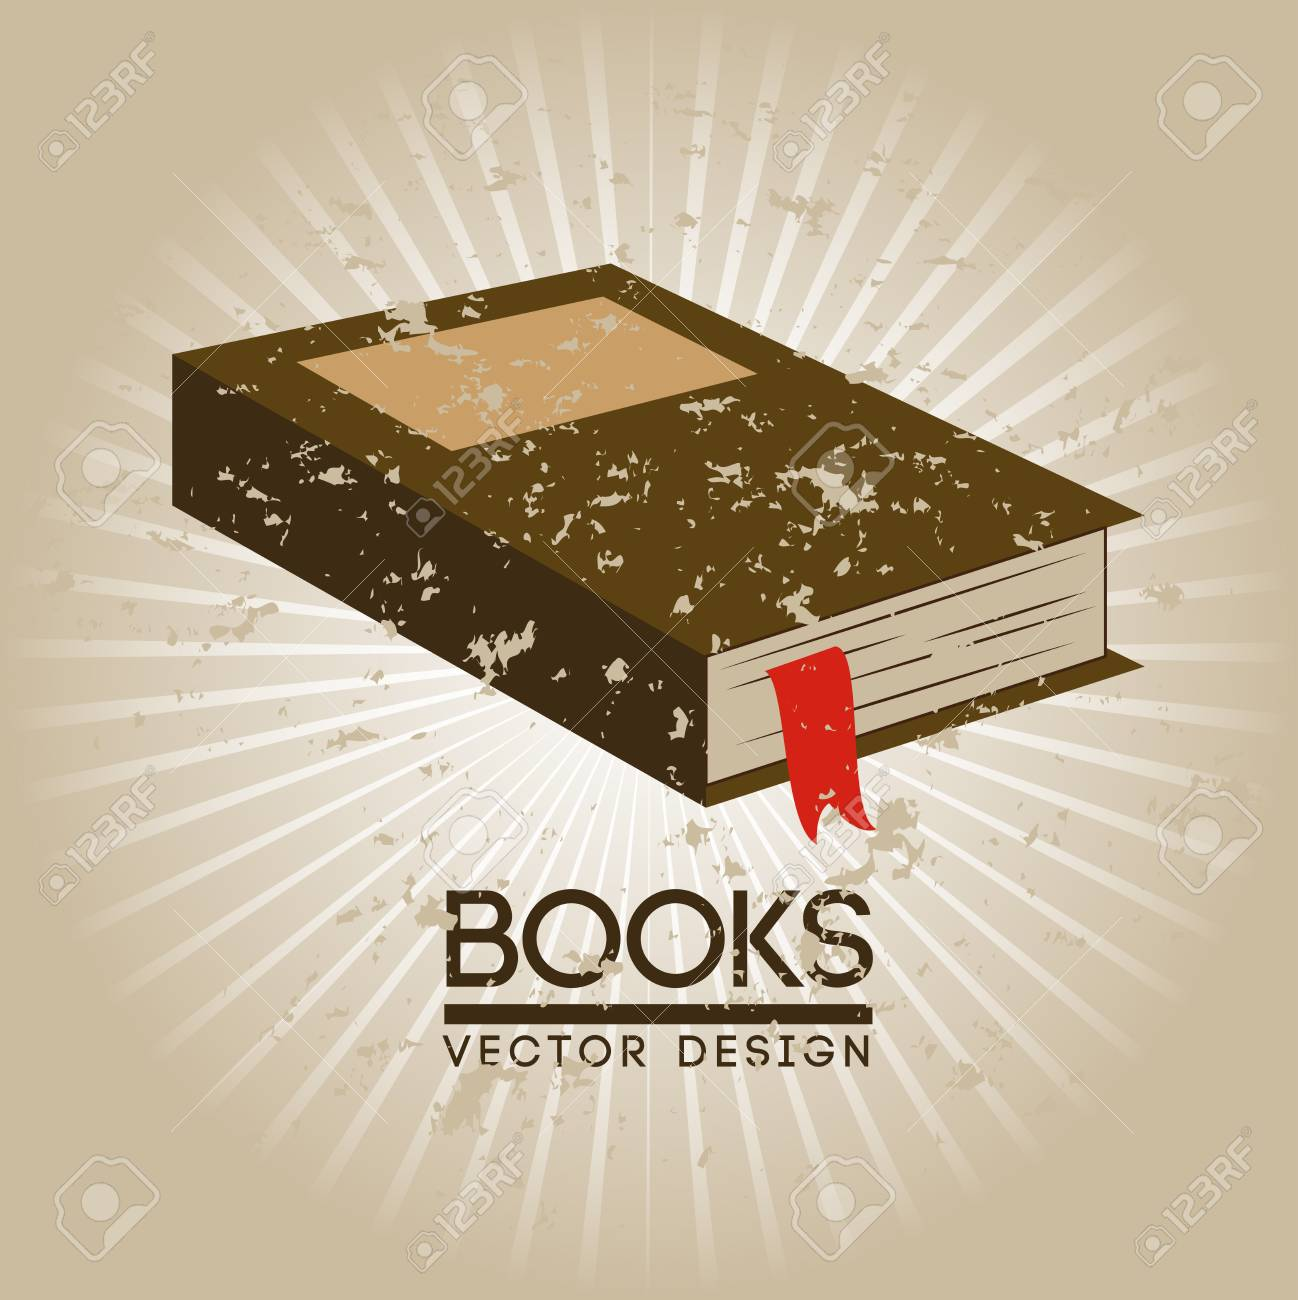 books design over beige background vector illustration Stock Vector - 22333991